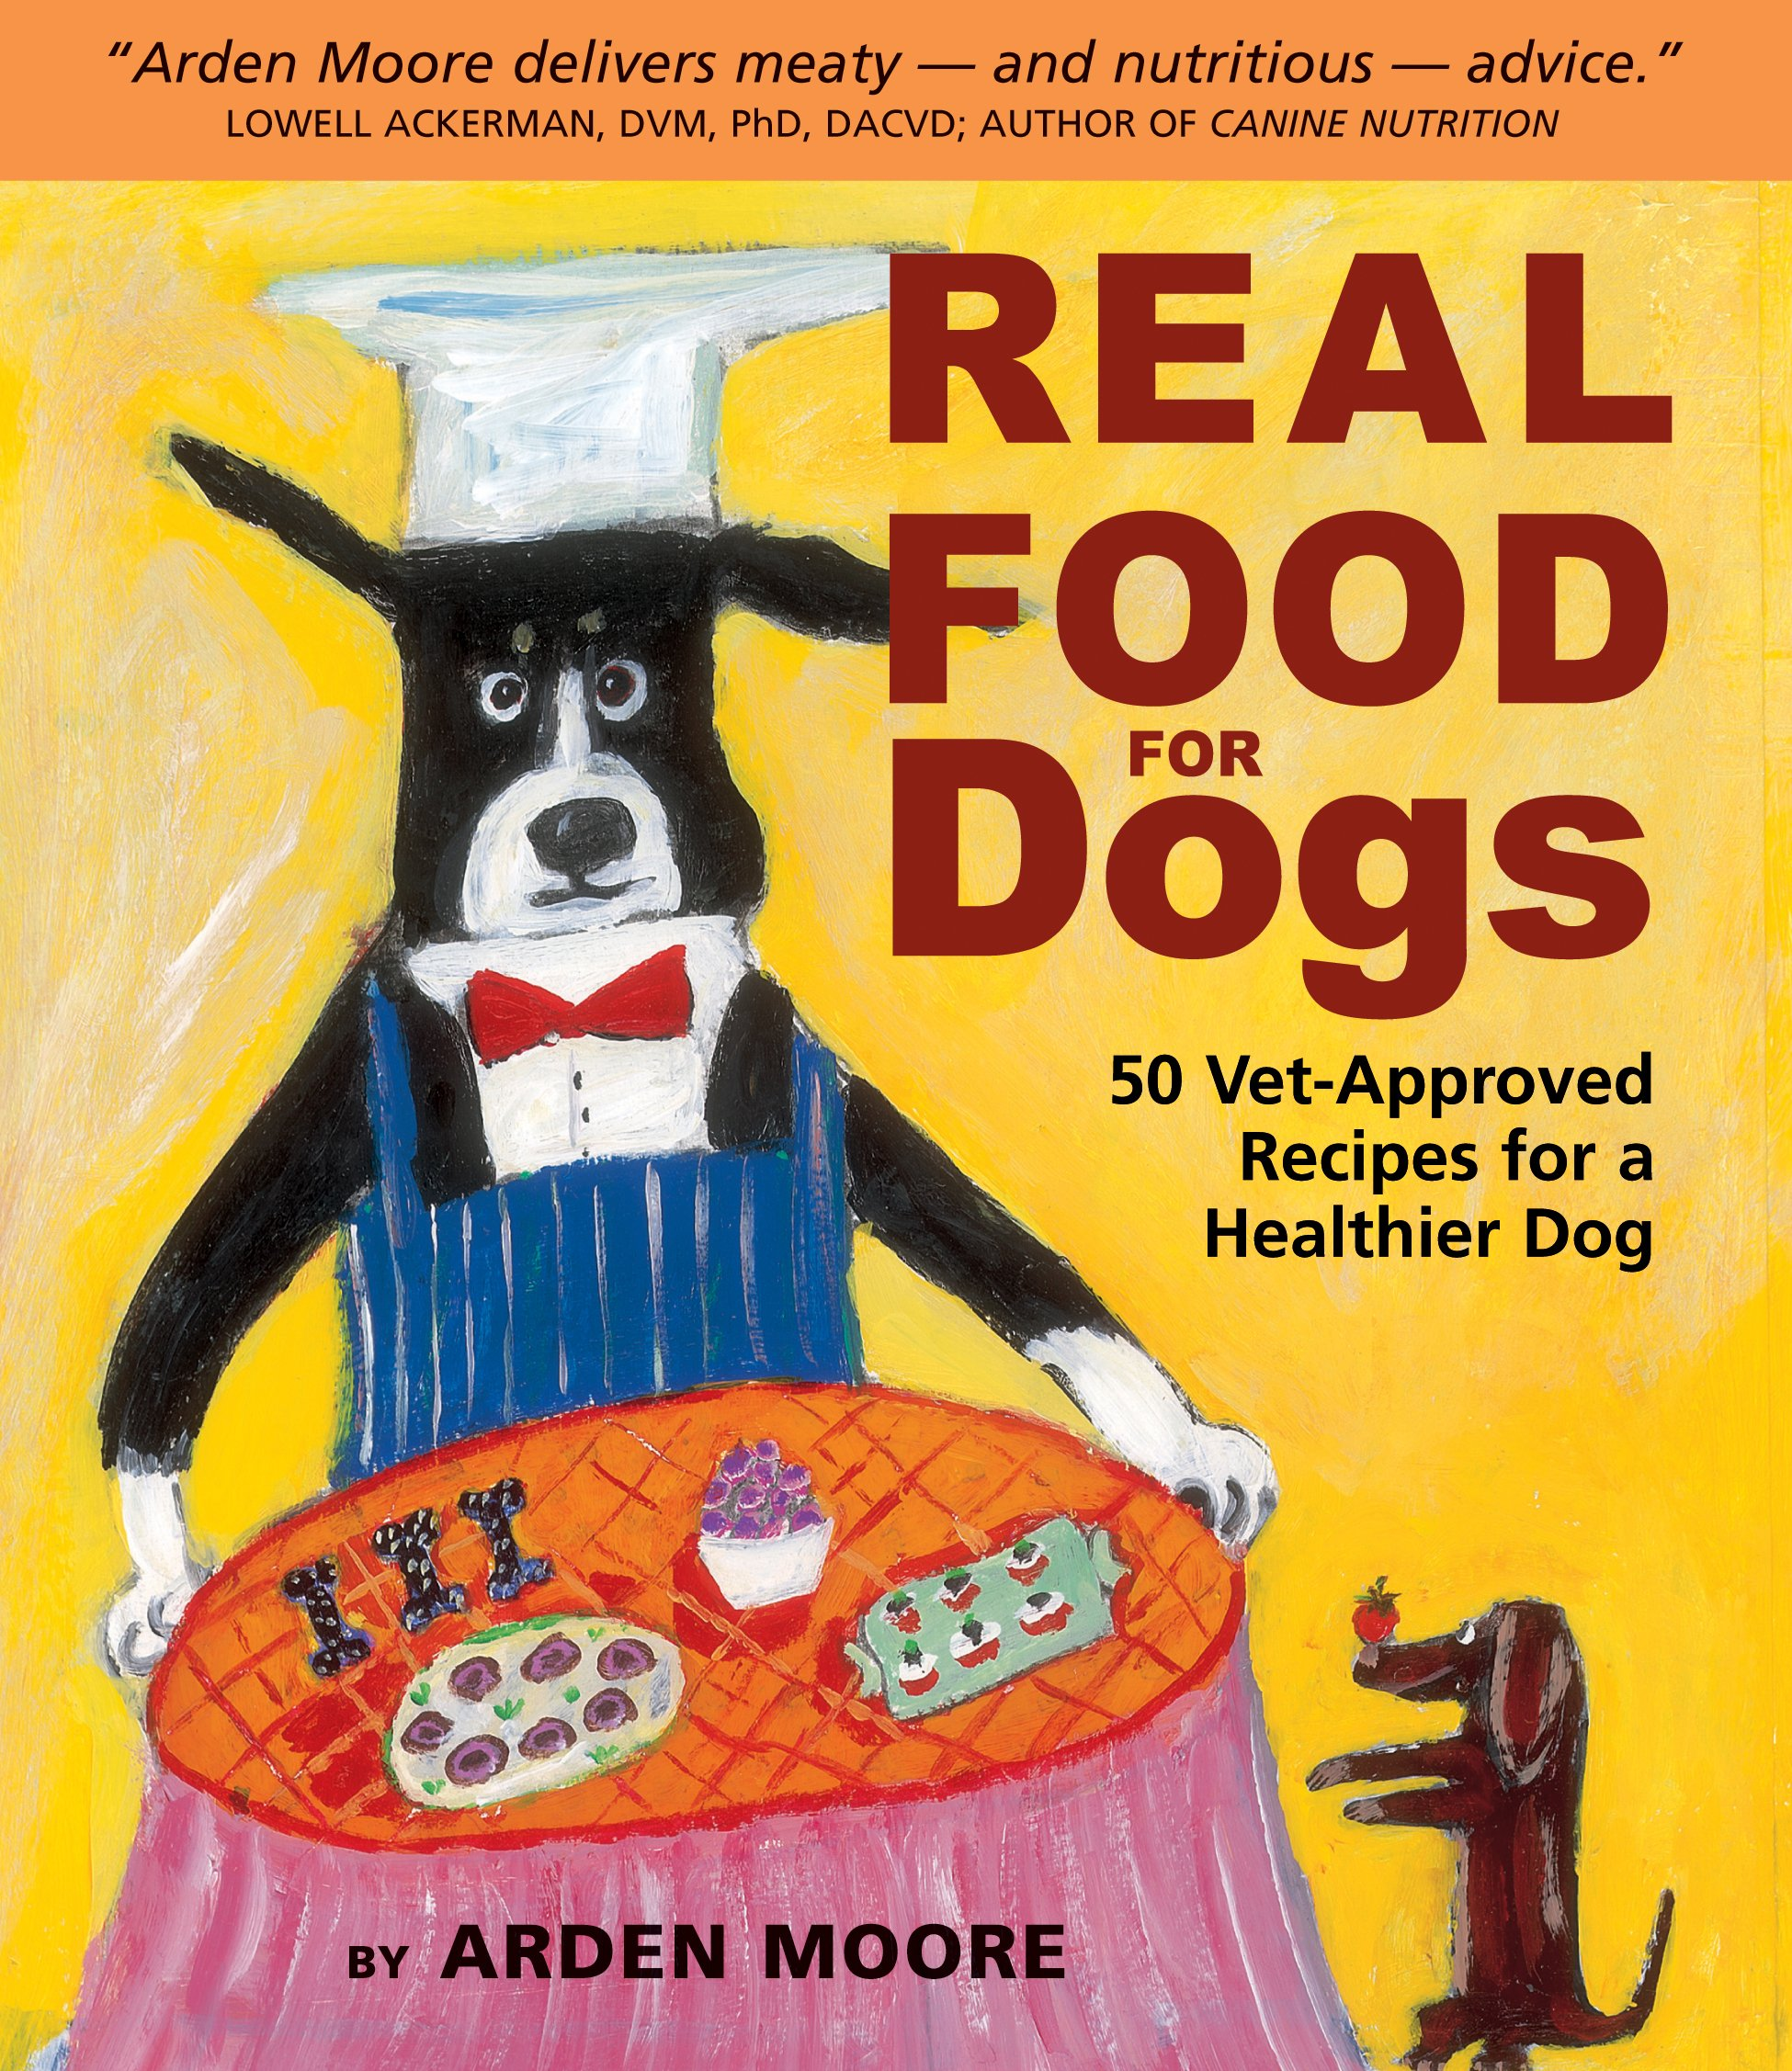 Real food for dogs 50 vet approved recipes for a healthier dog real food for dogs 50 vet approved recipes for a healthier dog arden moore anne davis 9781580174244 amazon books forumfinder Gallery